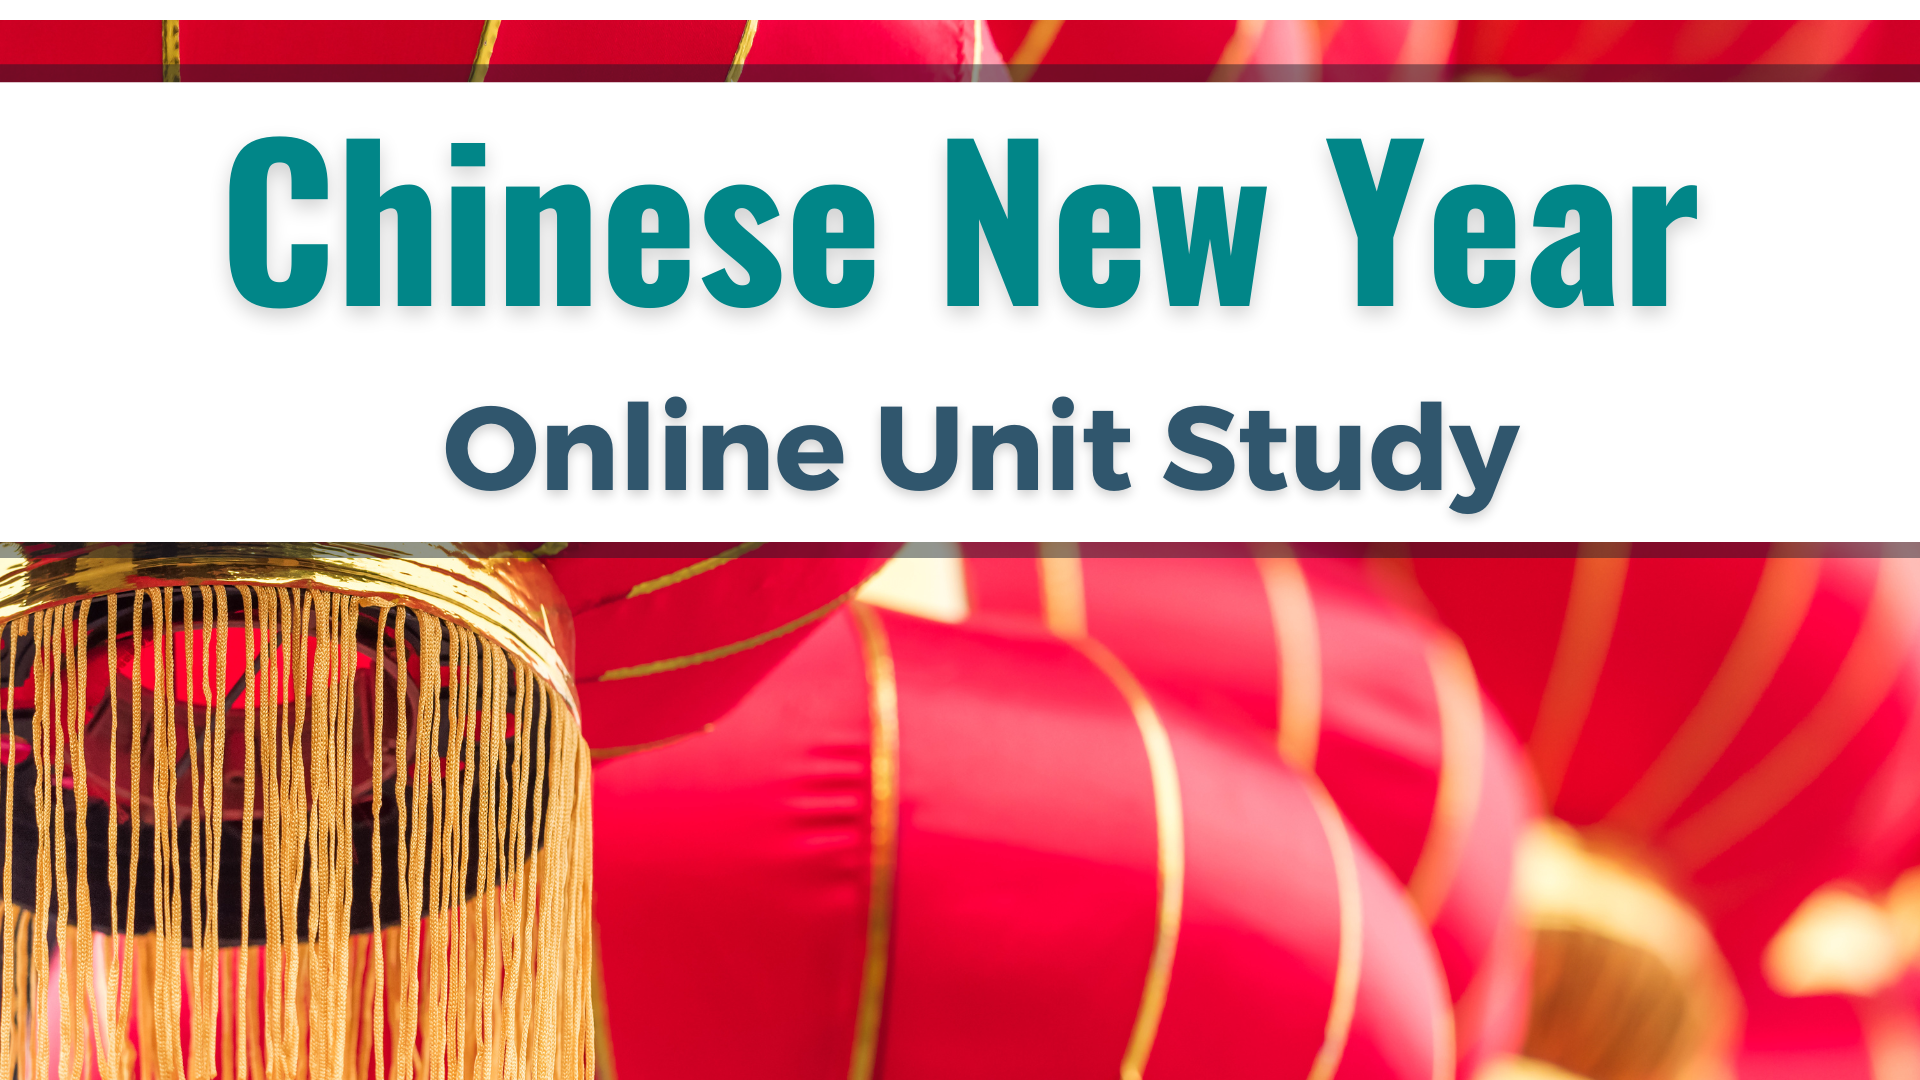 Learn about Chinese New Year with Online Unit Studies.